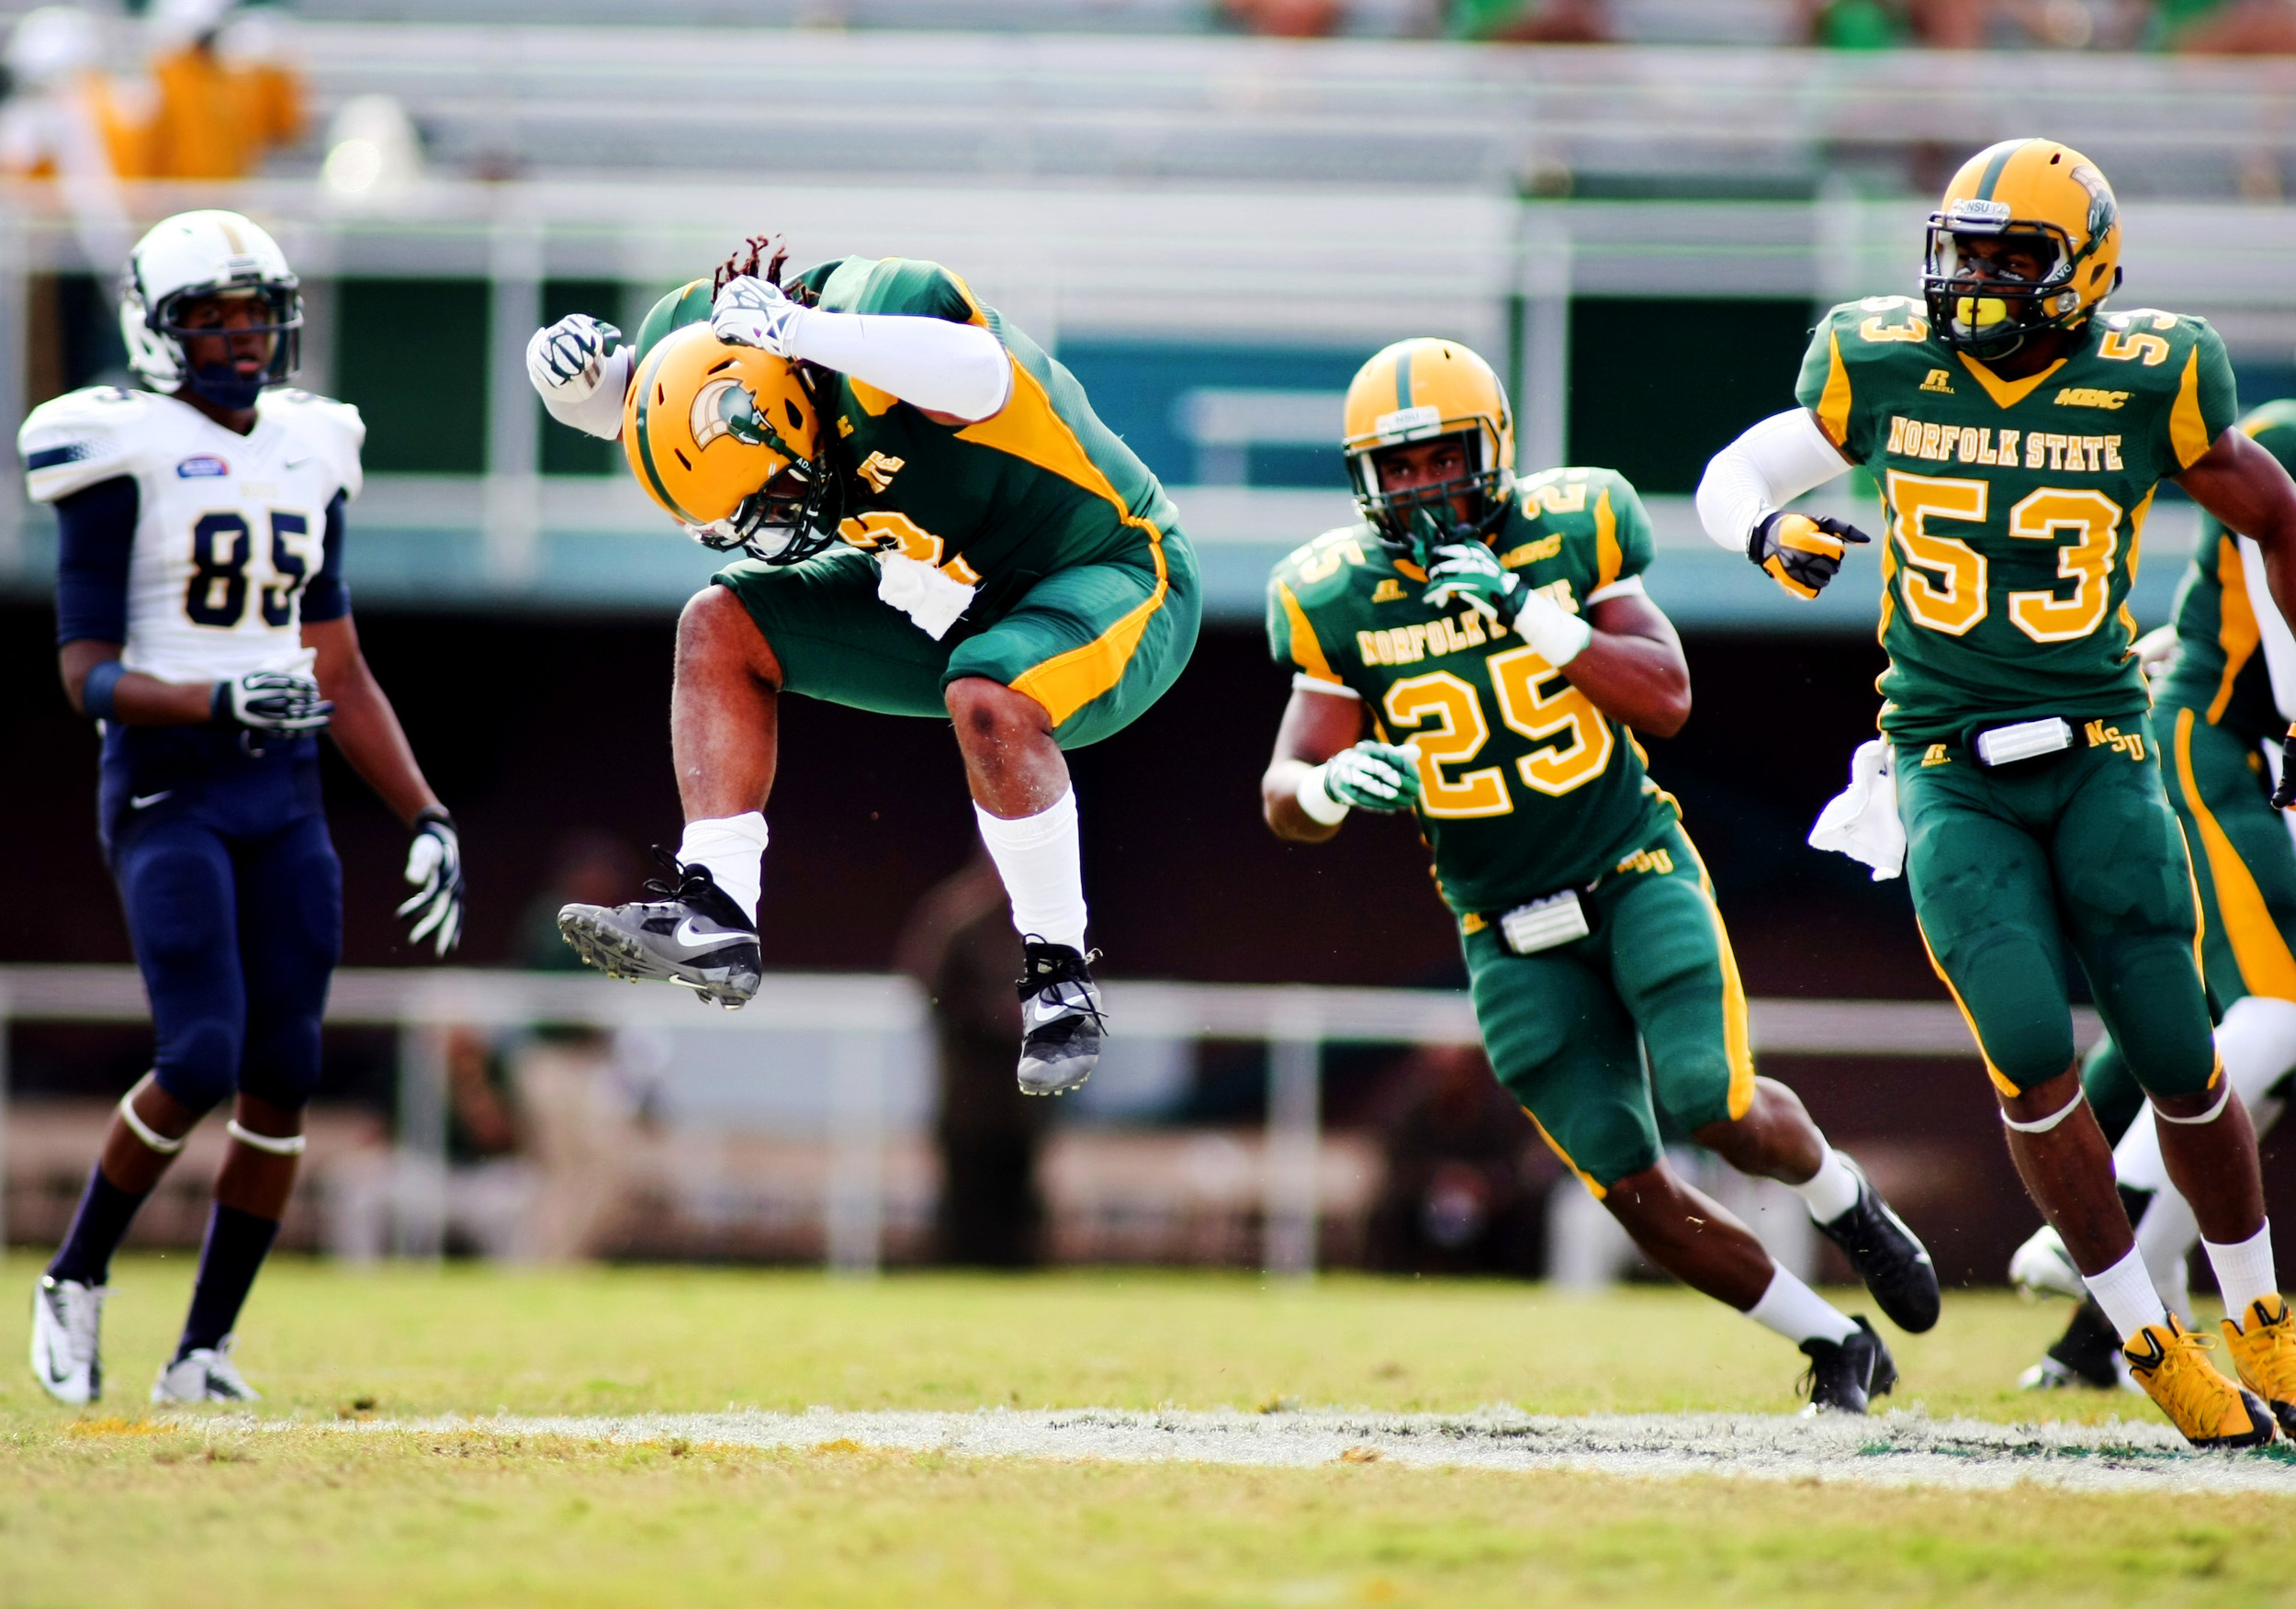 Norfolk State's Mike Privott jumps in the air to celebrate after sacking Charleston Southern quarterback Malcolm Dixon.